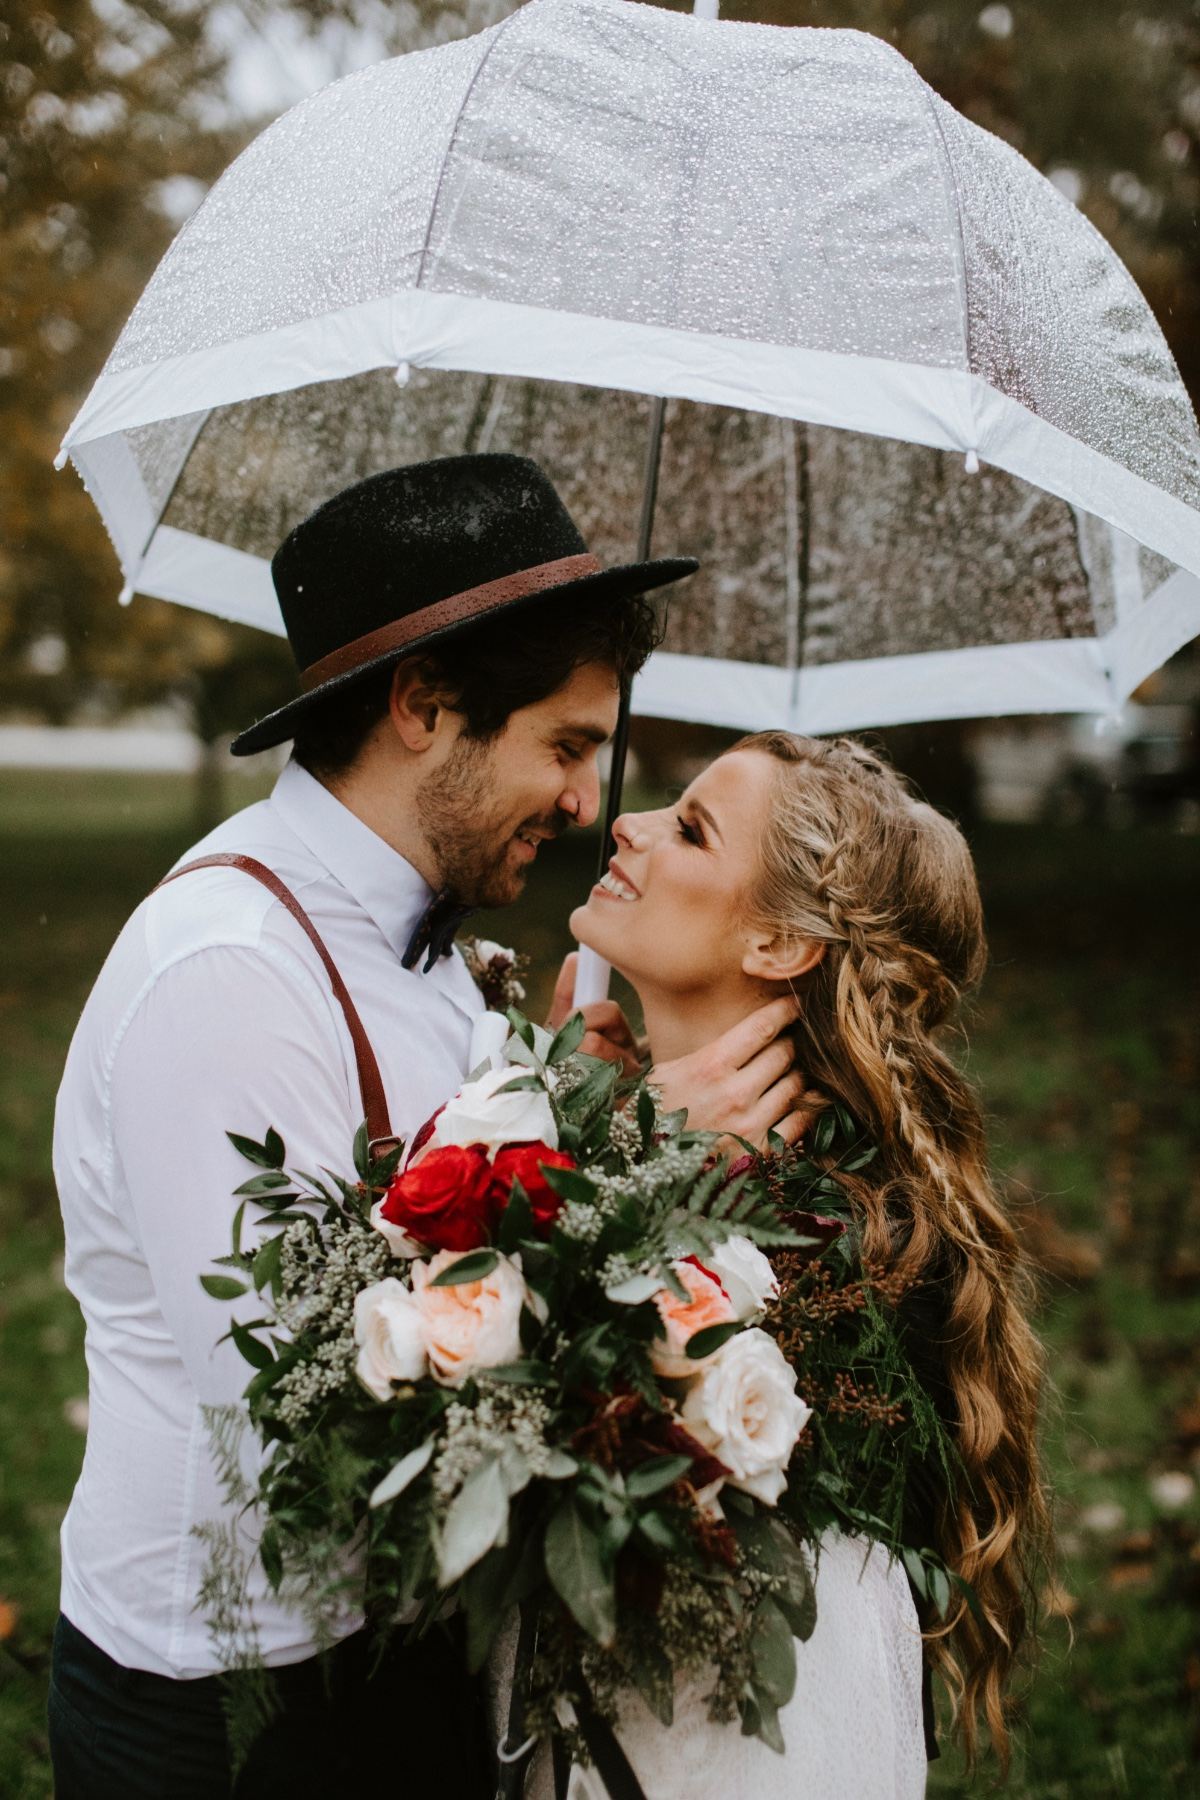 Moody wedding inspo in the rain